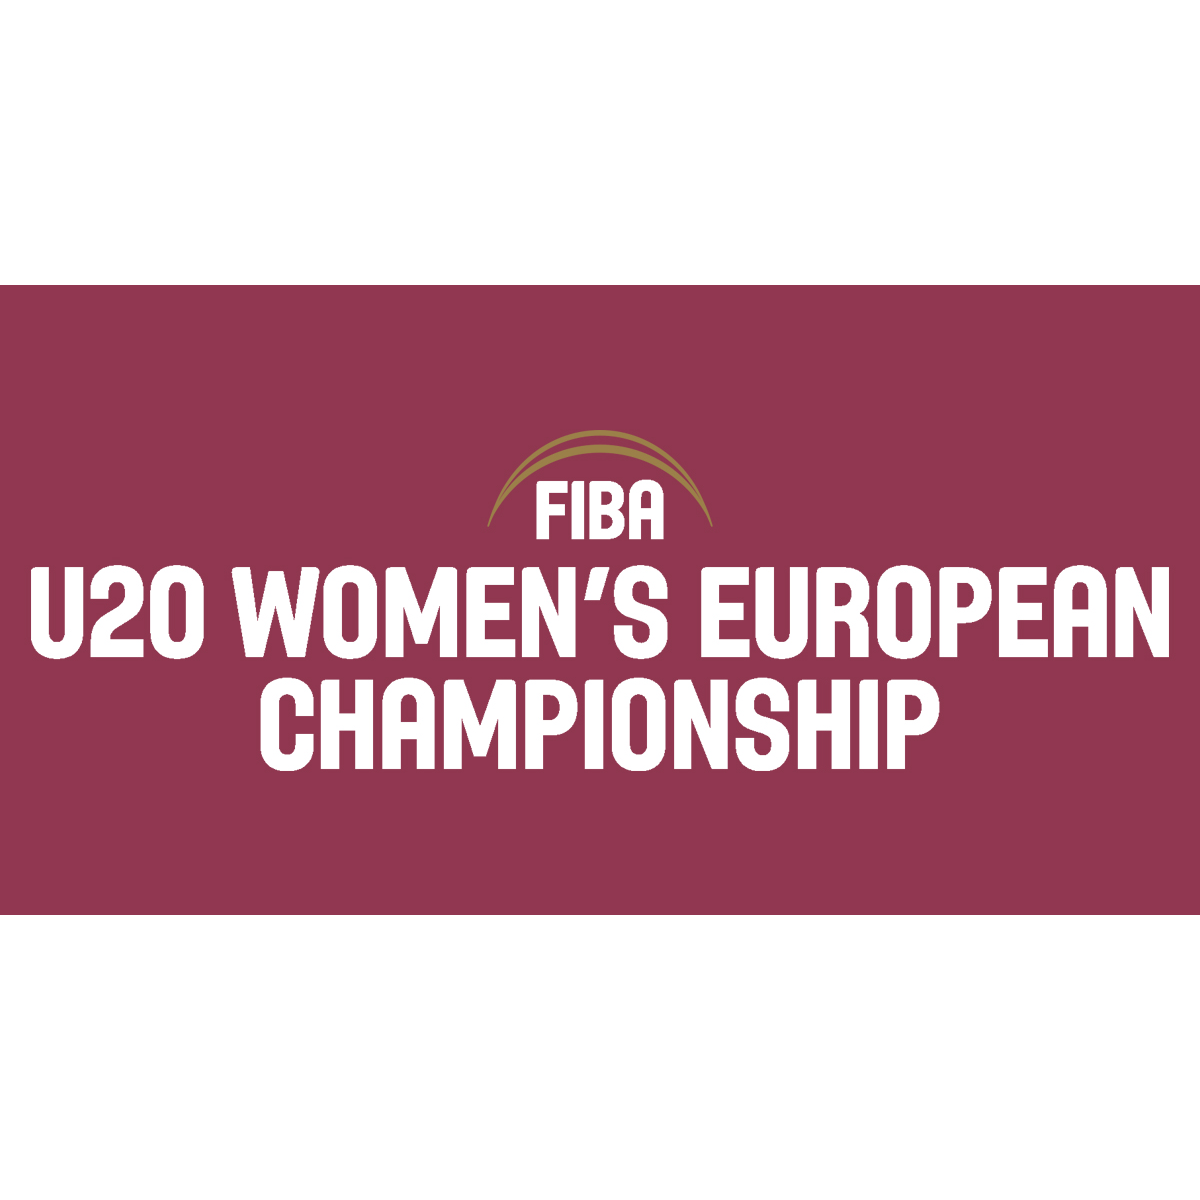 2017 FIBA U20 Women's European Basketball Championship